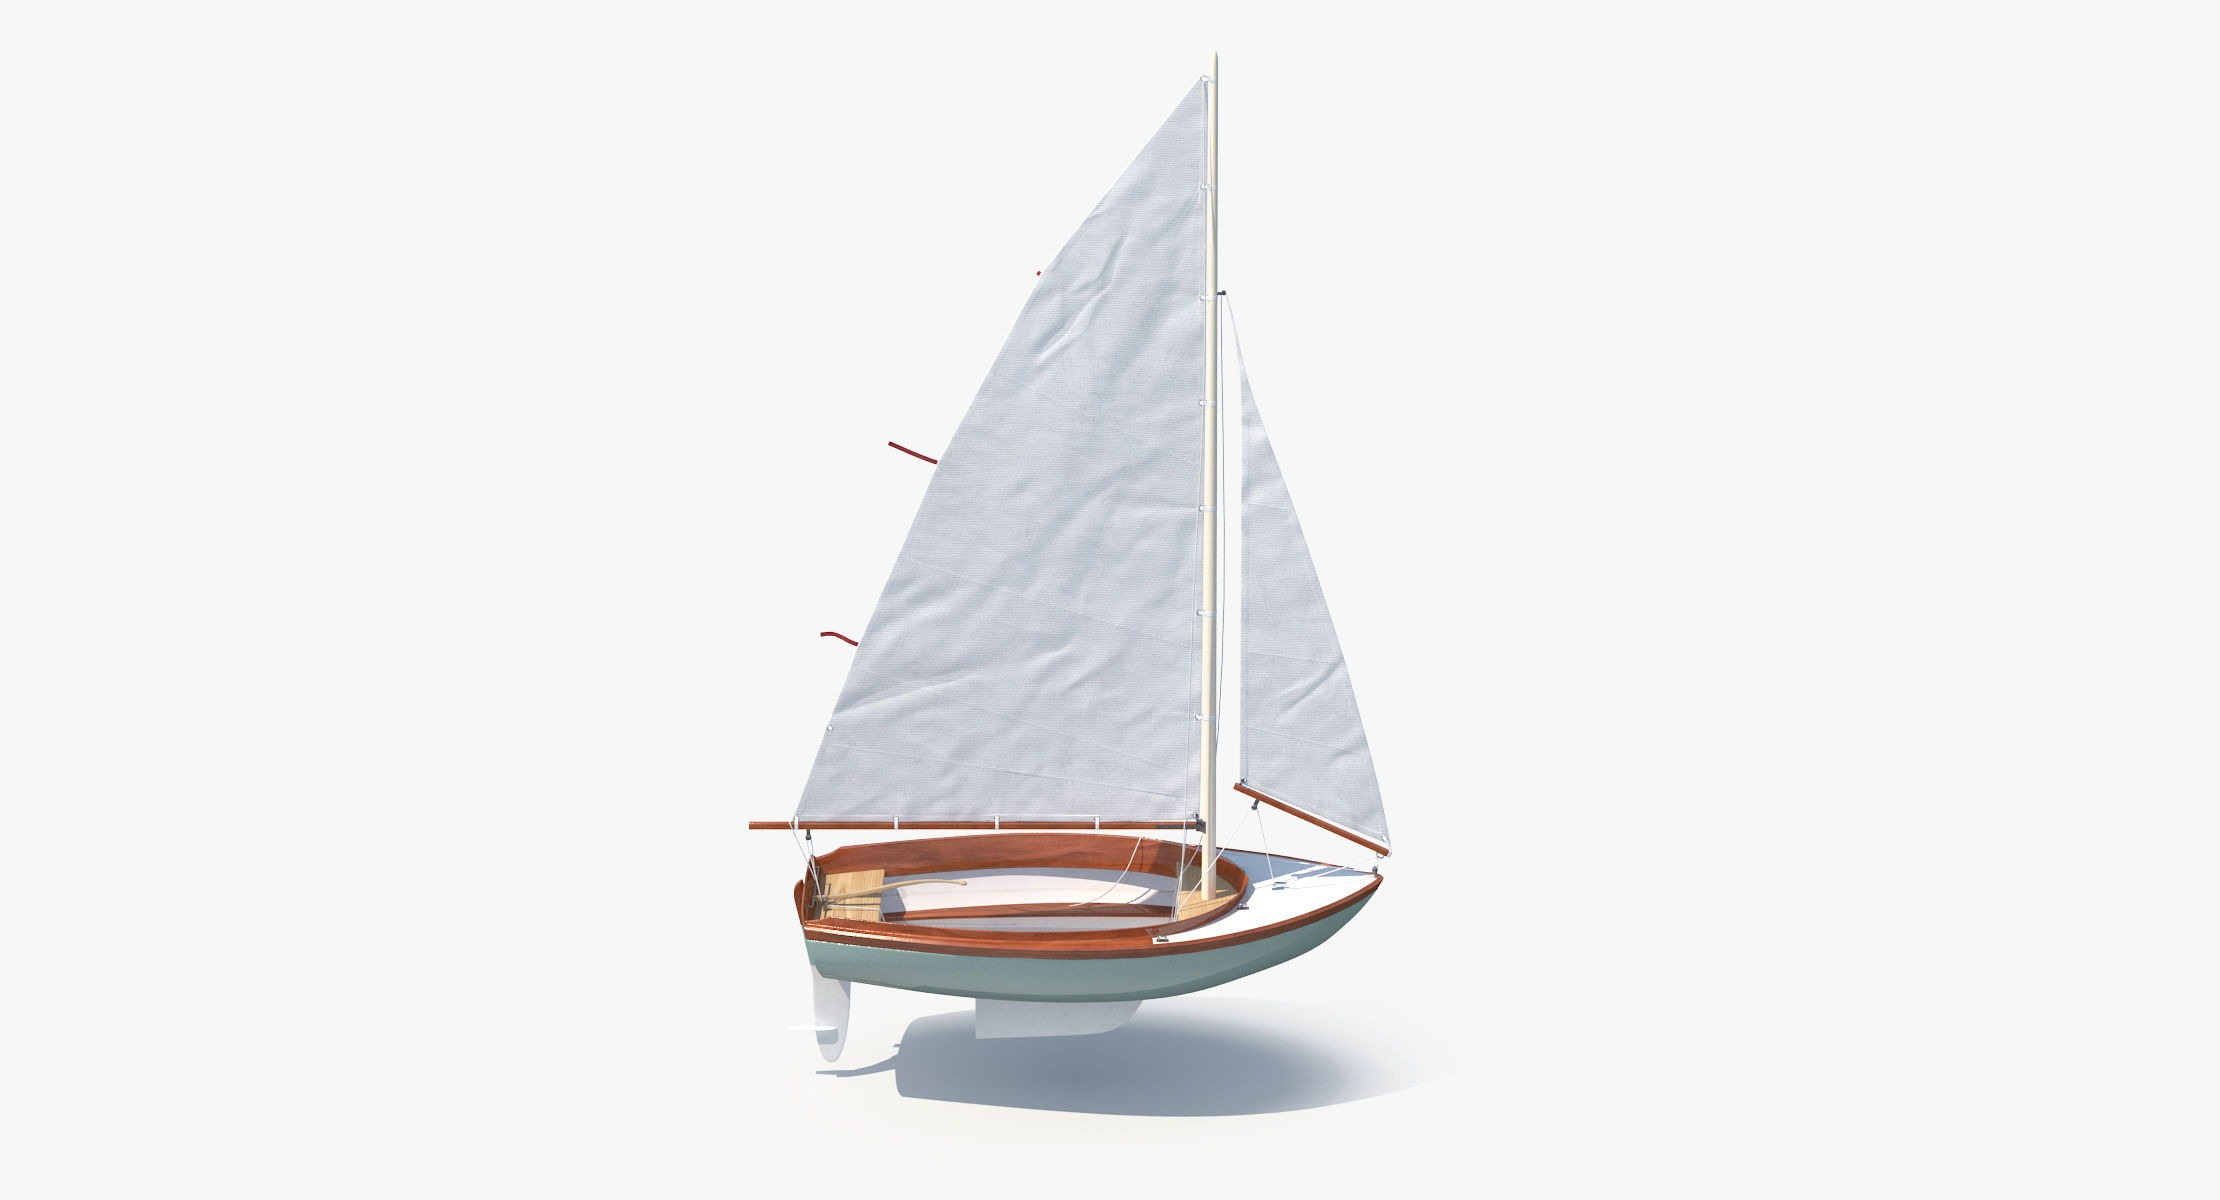 Sailboat - reel 1